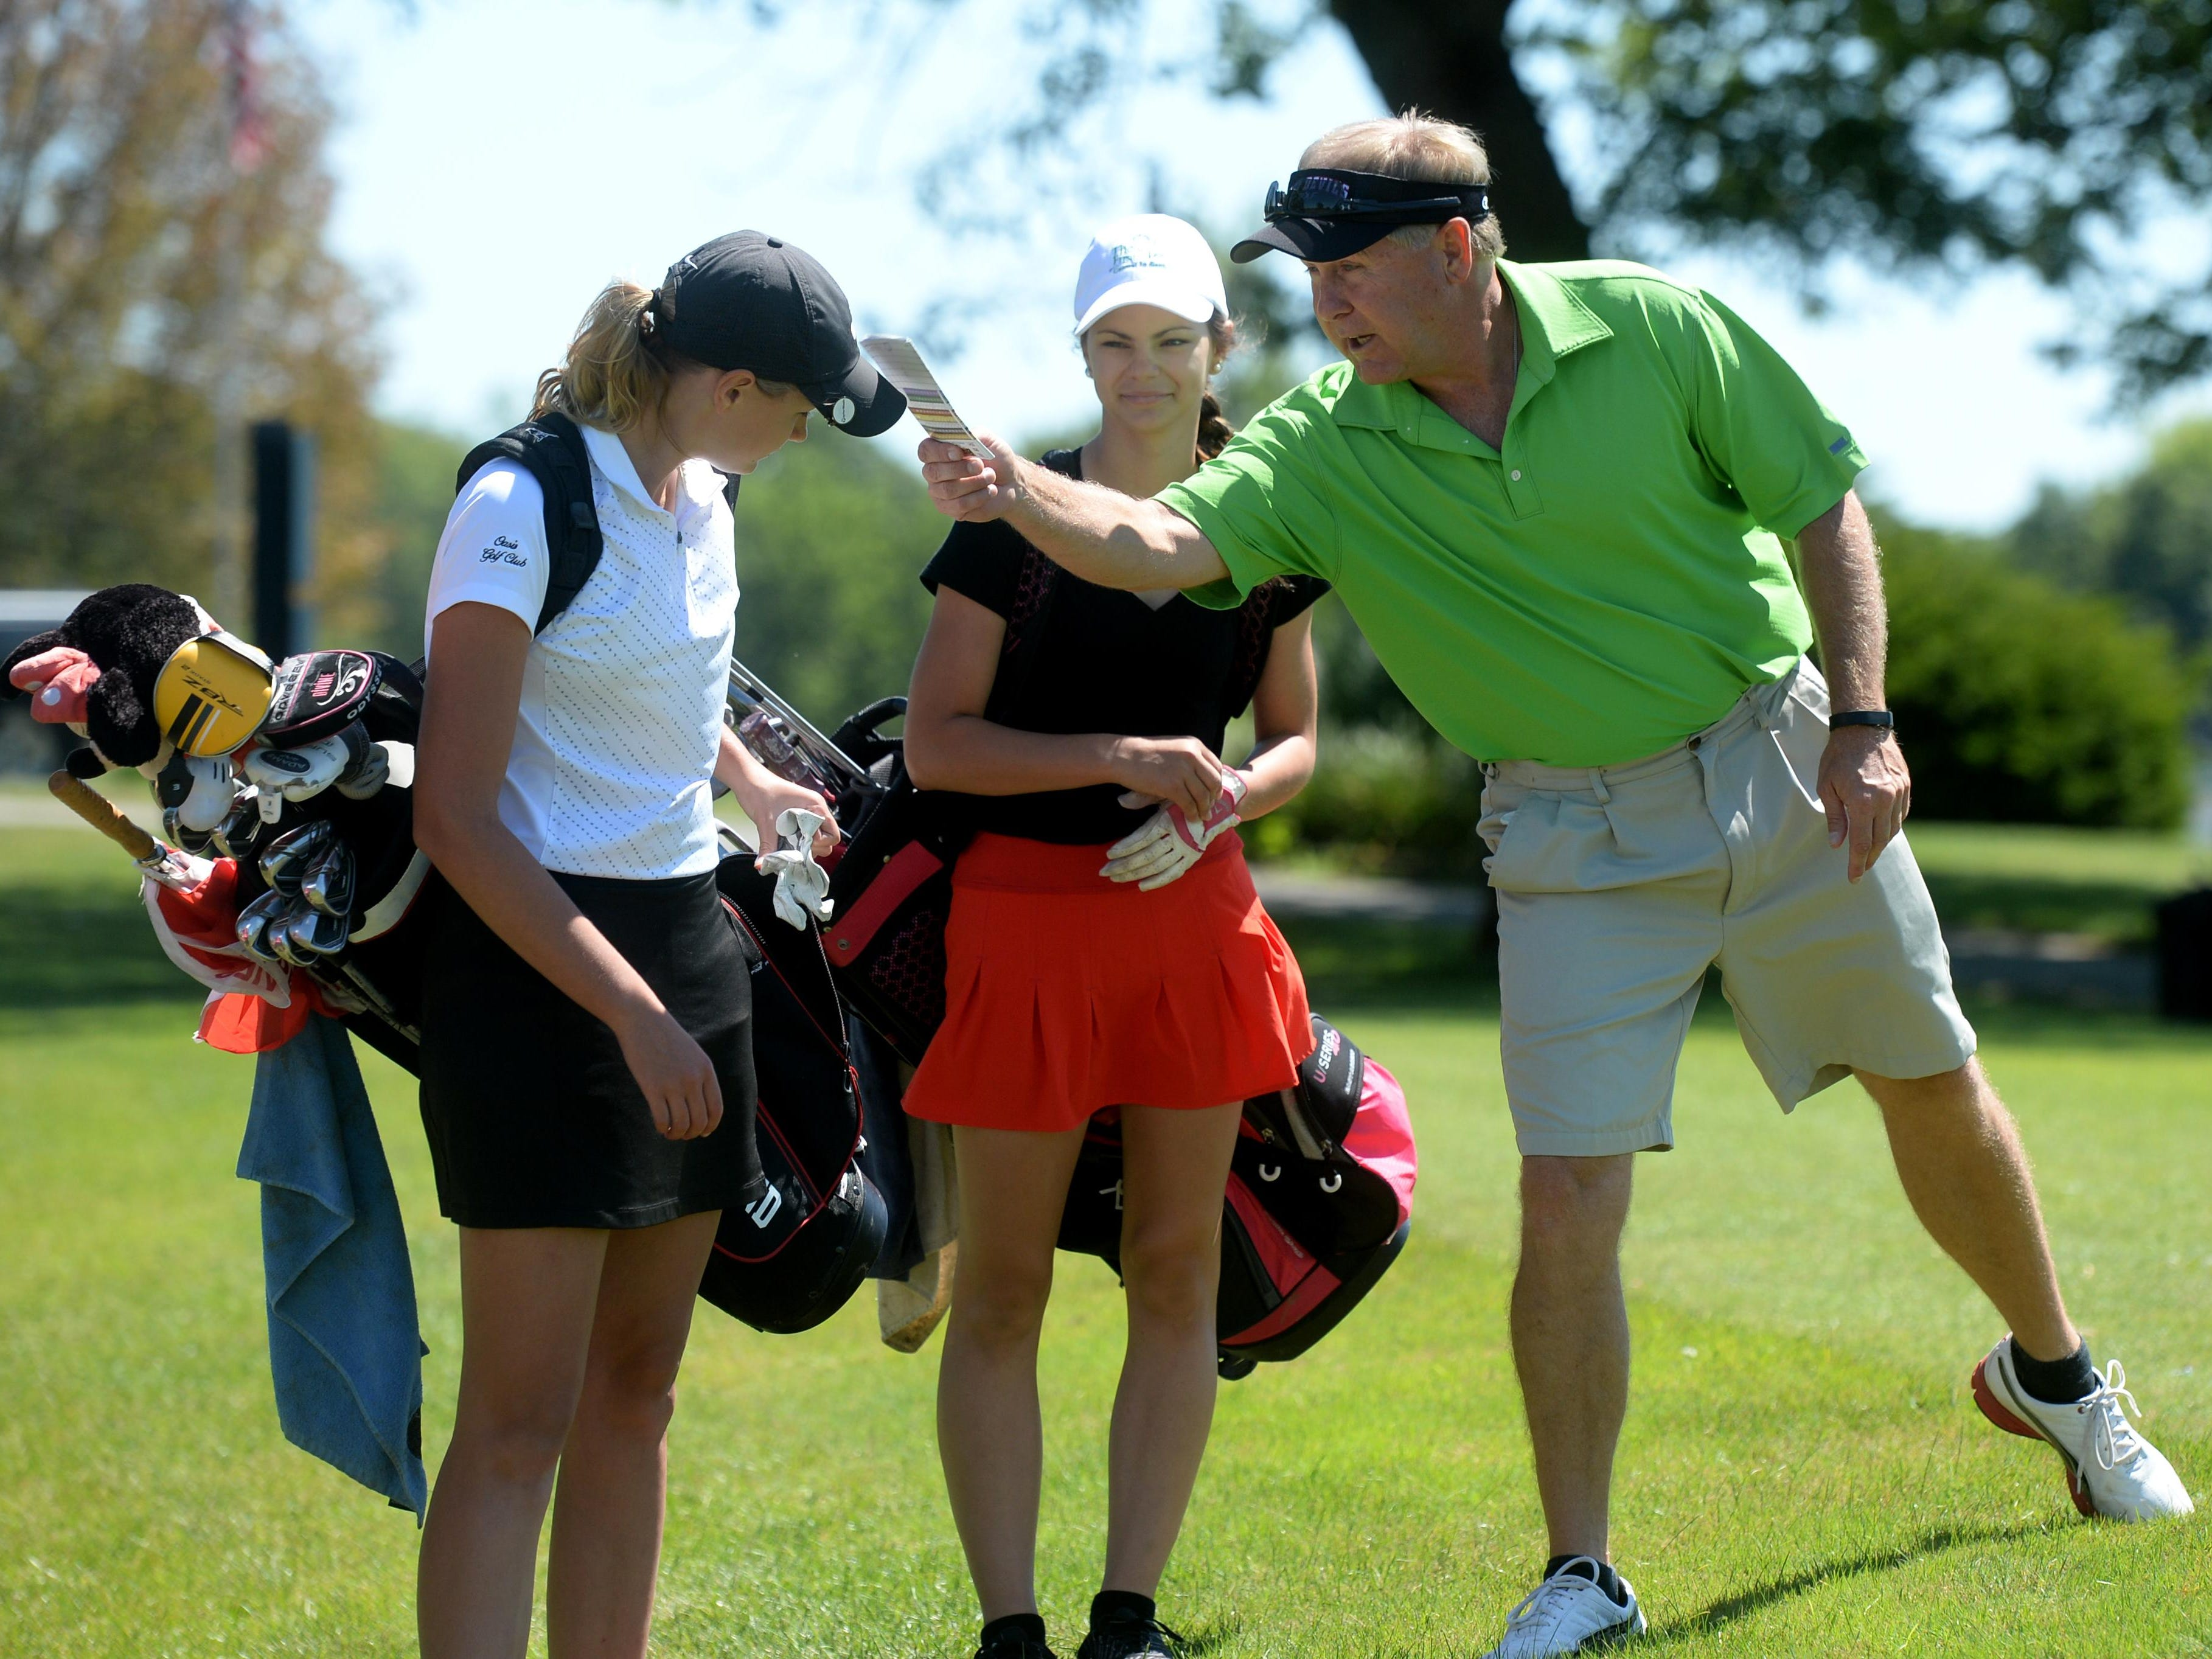 Richmond High School golf coach Ron Murphy, right, jokes with golfers Jacey Cornett, left, and Maggie Camp during practice at Elks. This is Murphy's final season as the Red Devils golf coach.